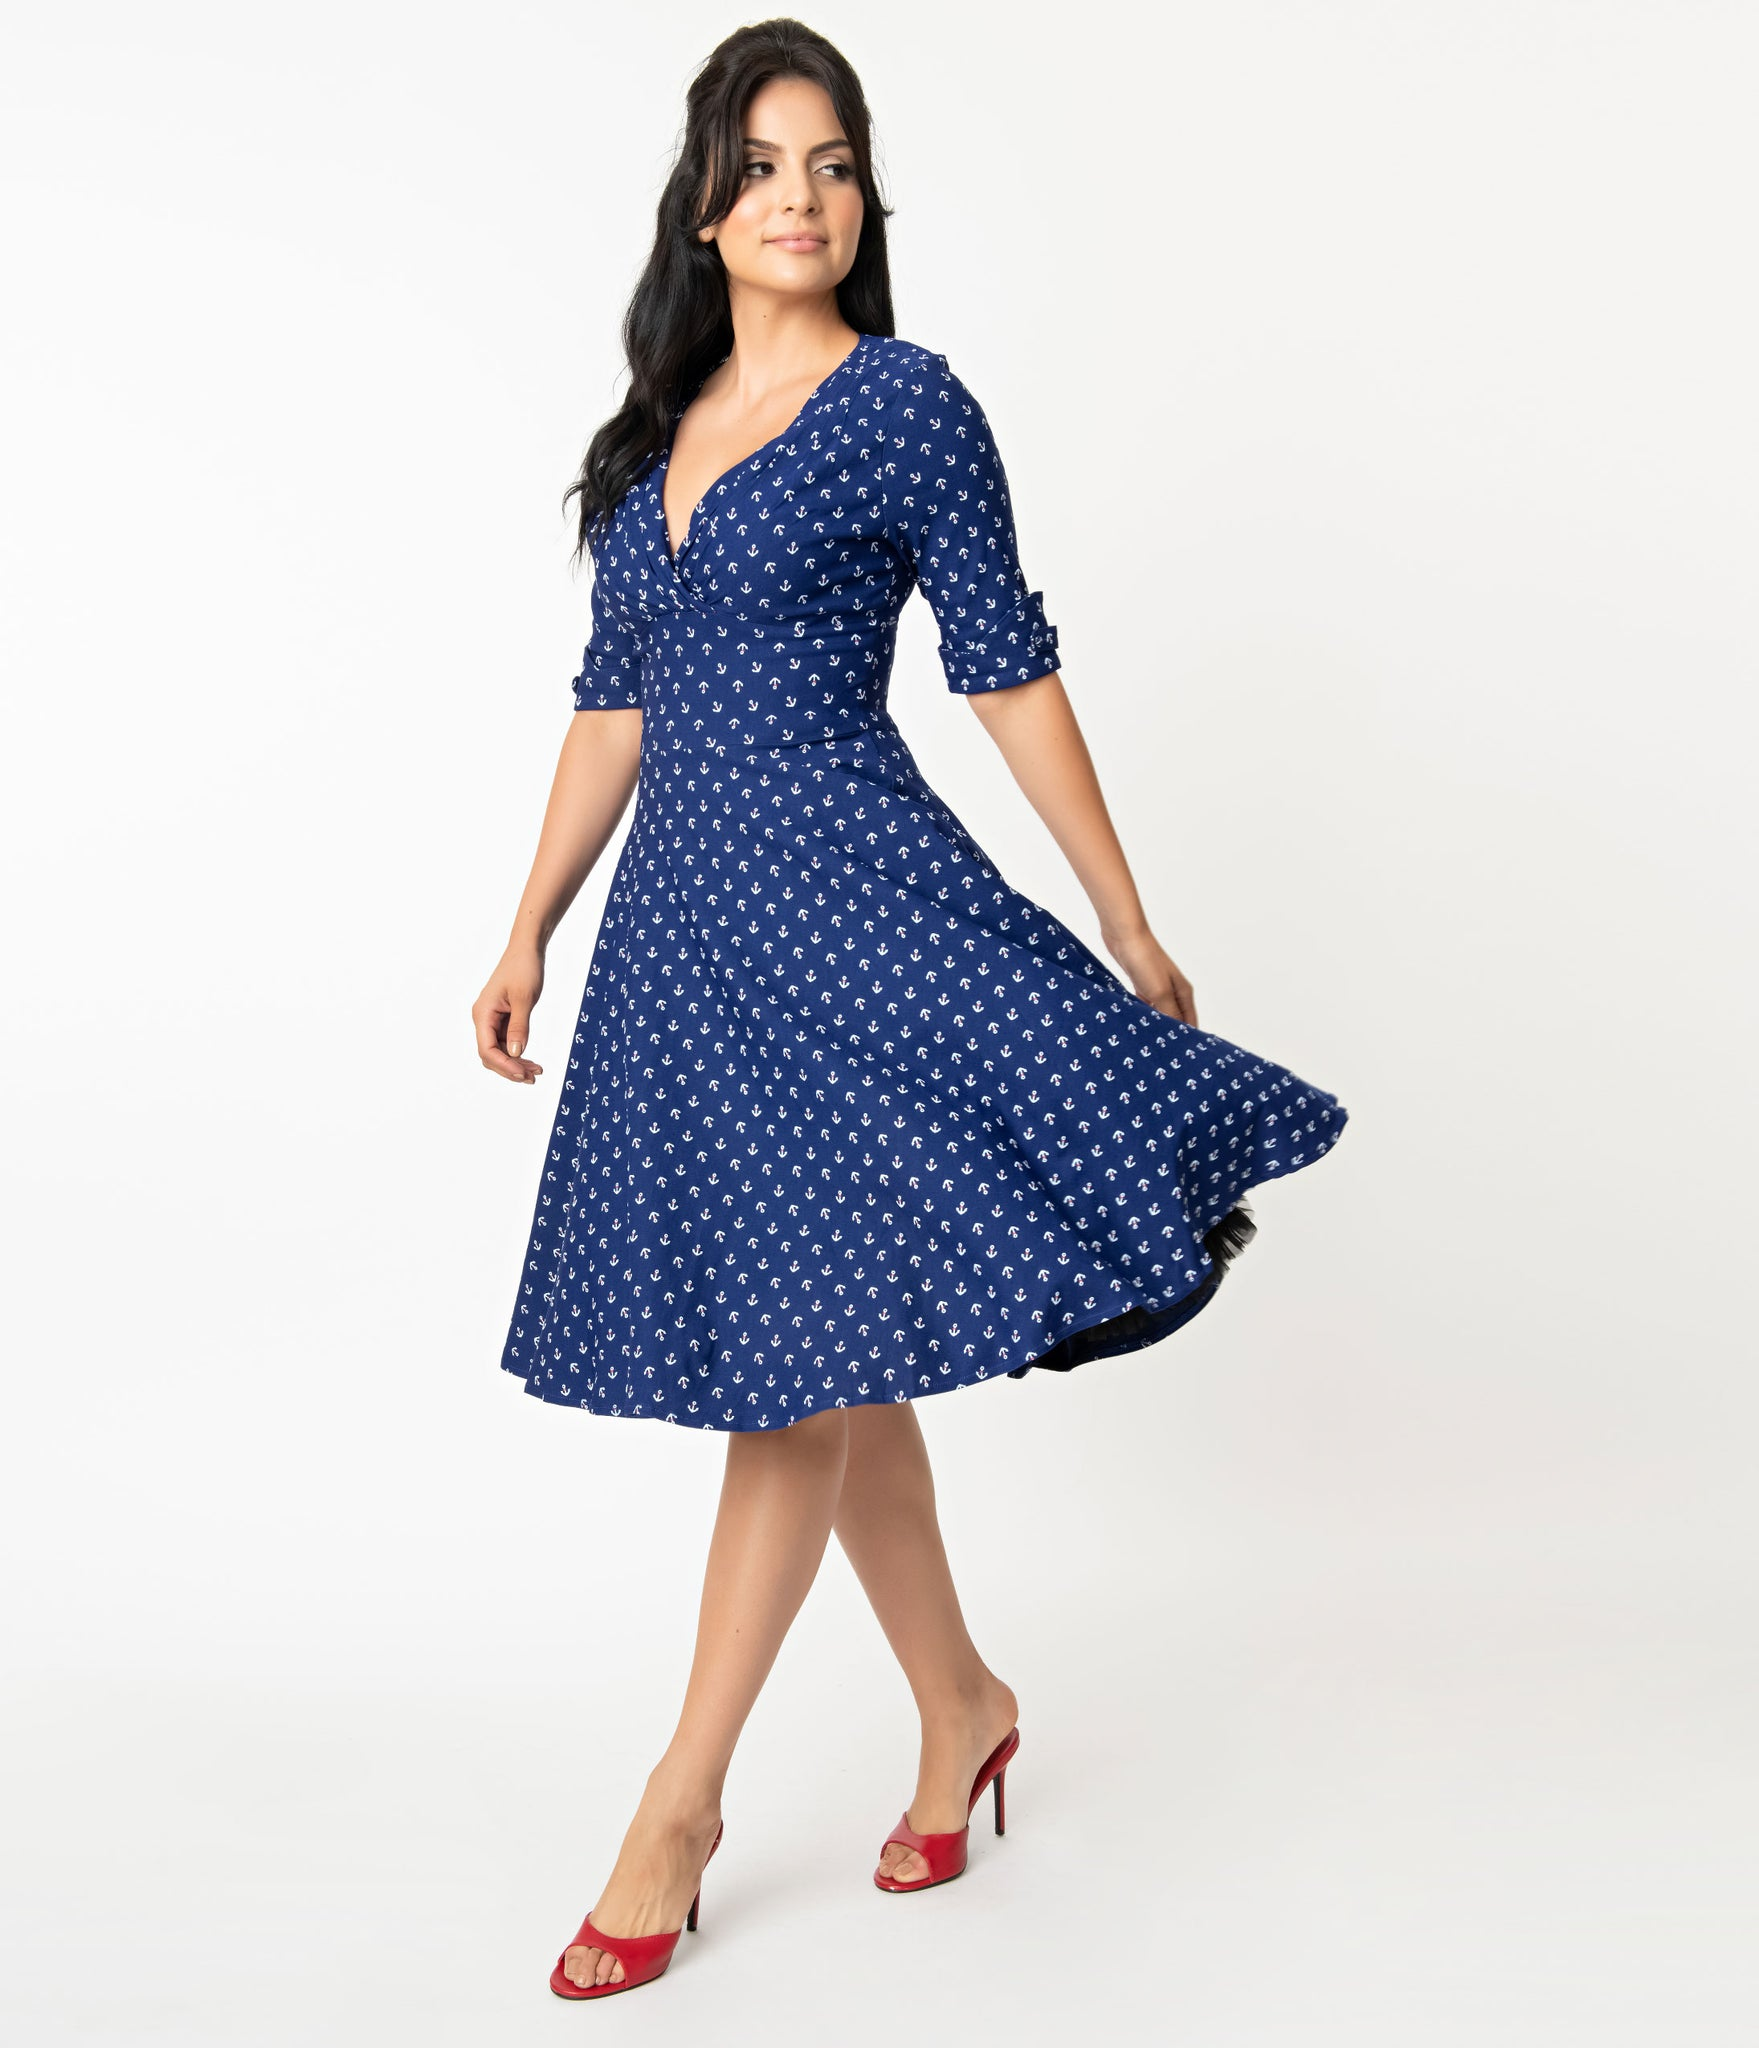 Unique Vintage 1950s Blue Anchor Print Delores Swing Dress with Sleeves